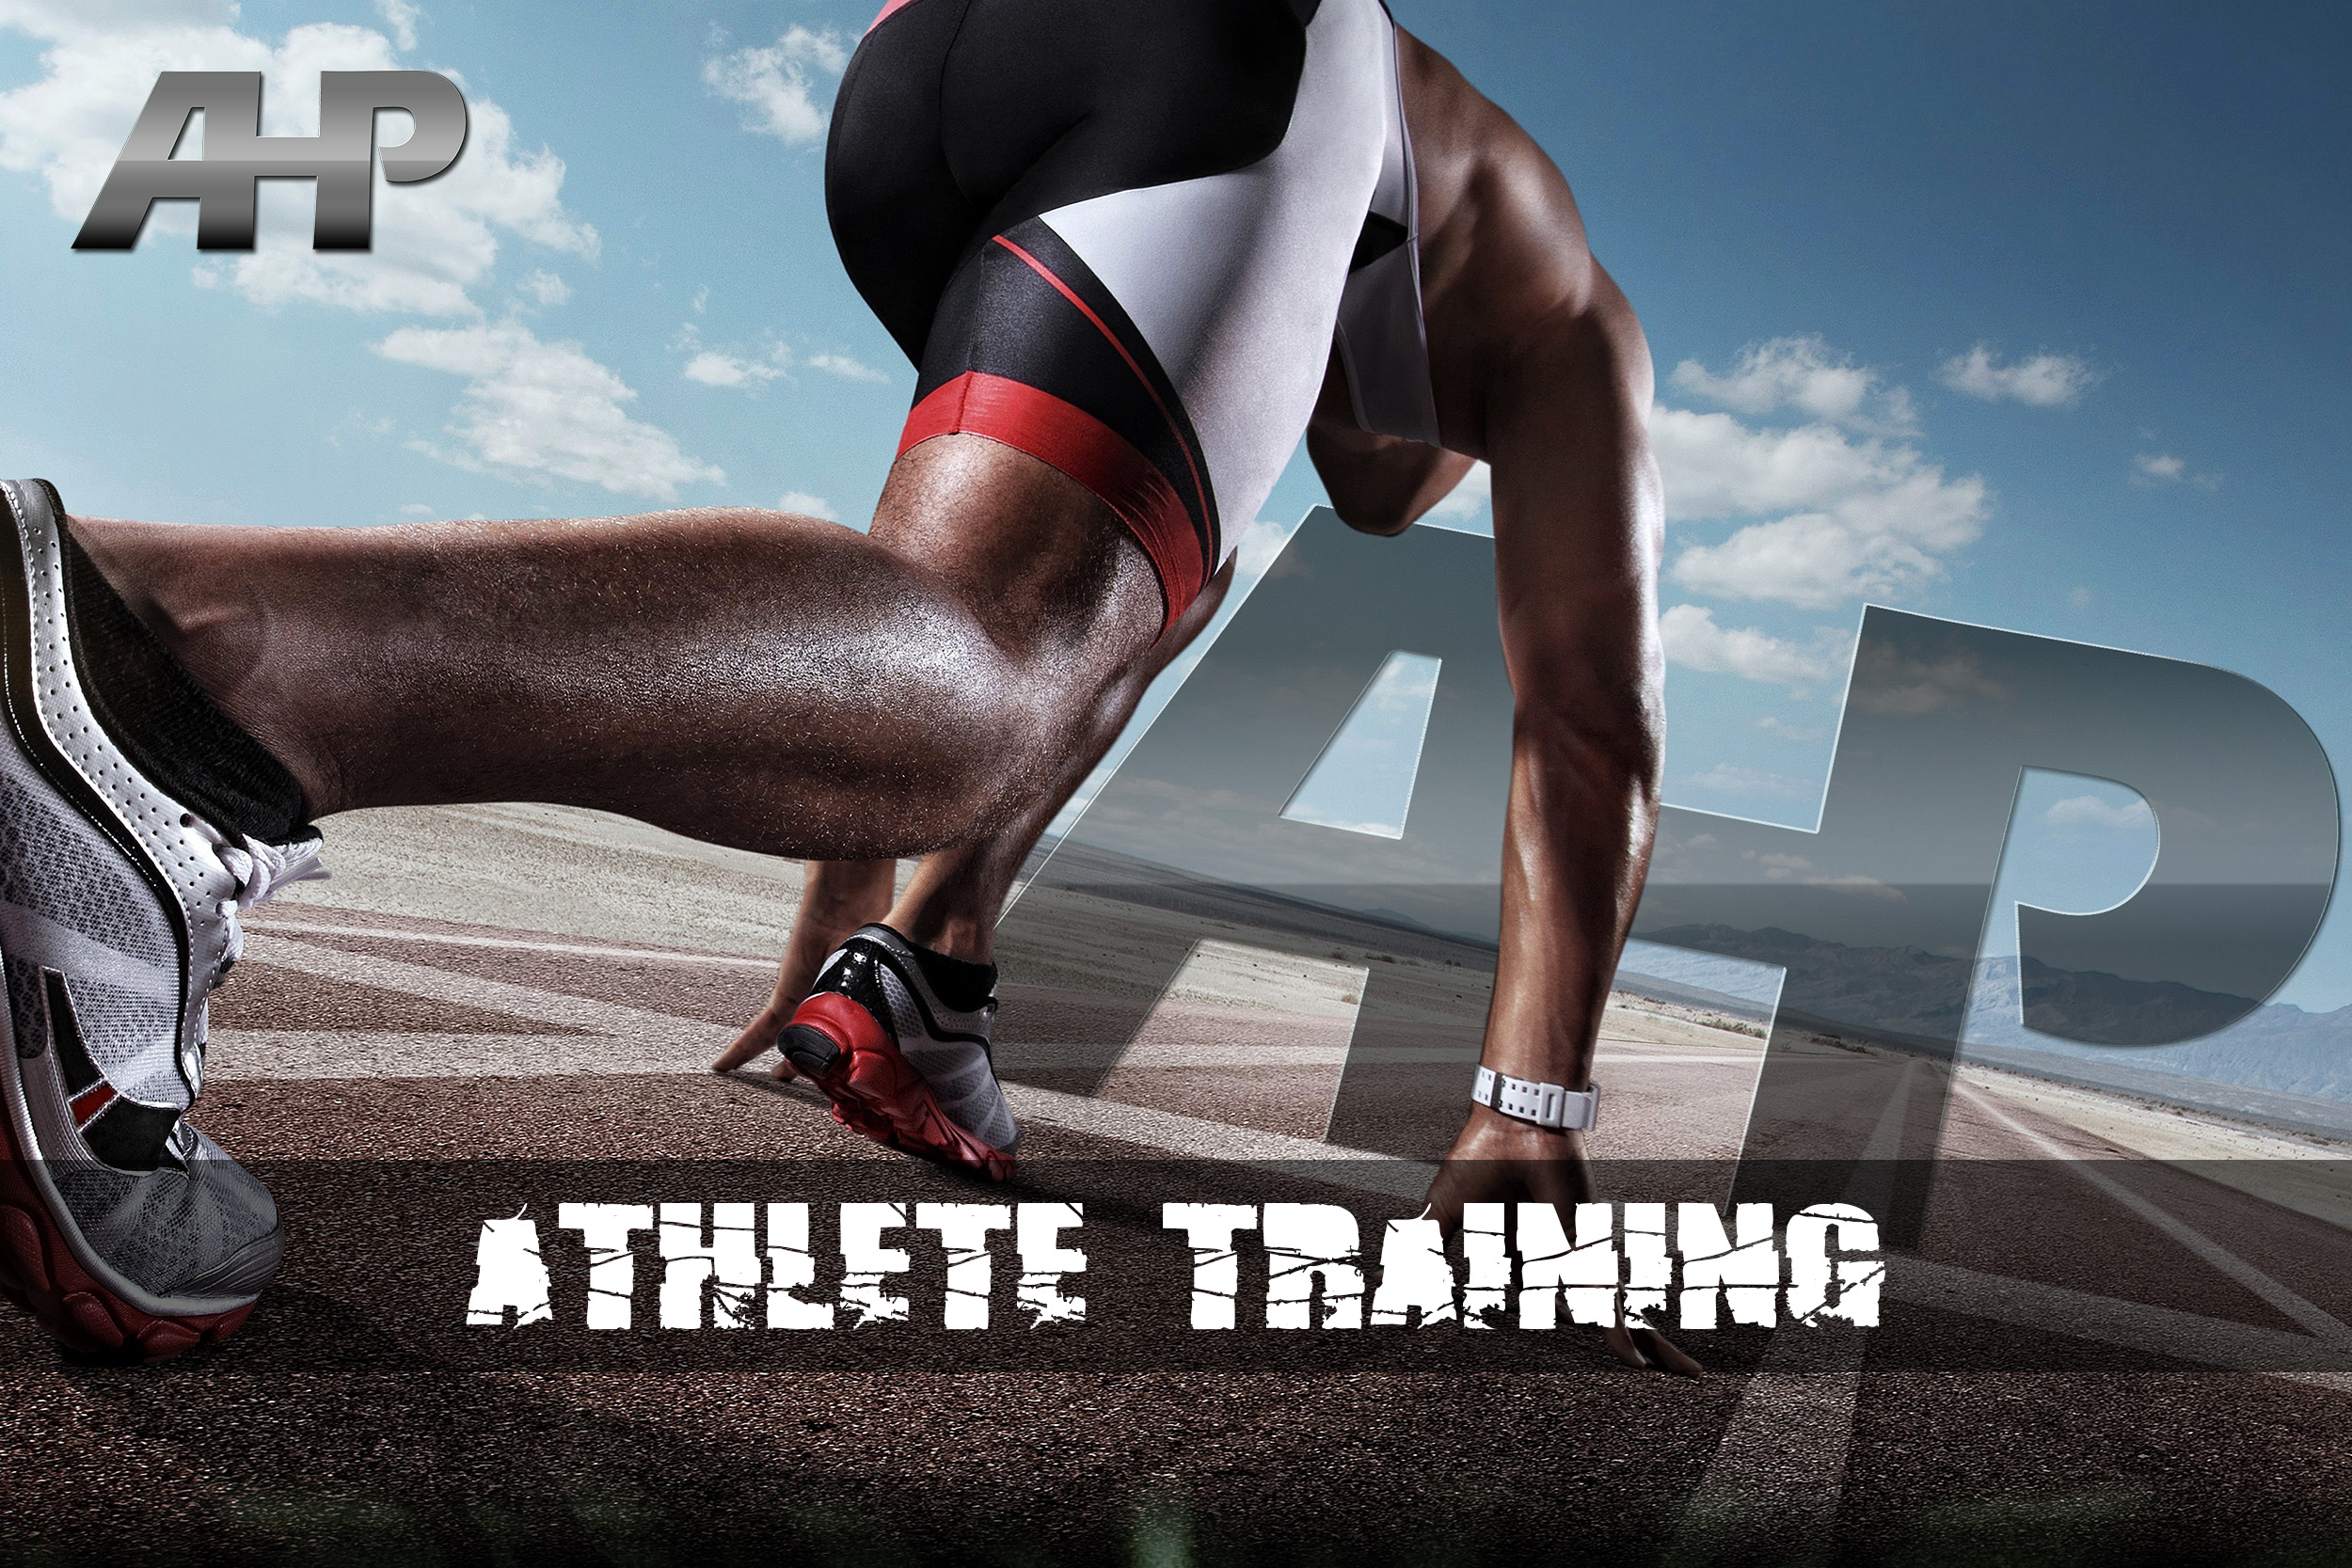 Athlete Training (AHP).jpg